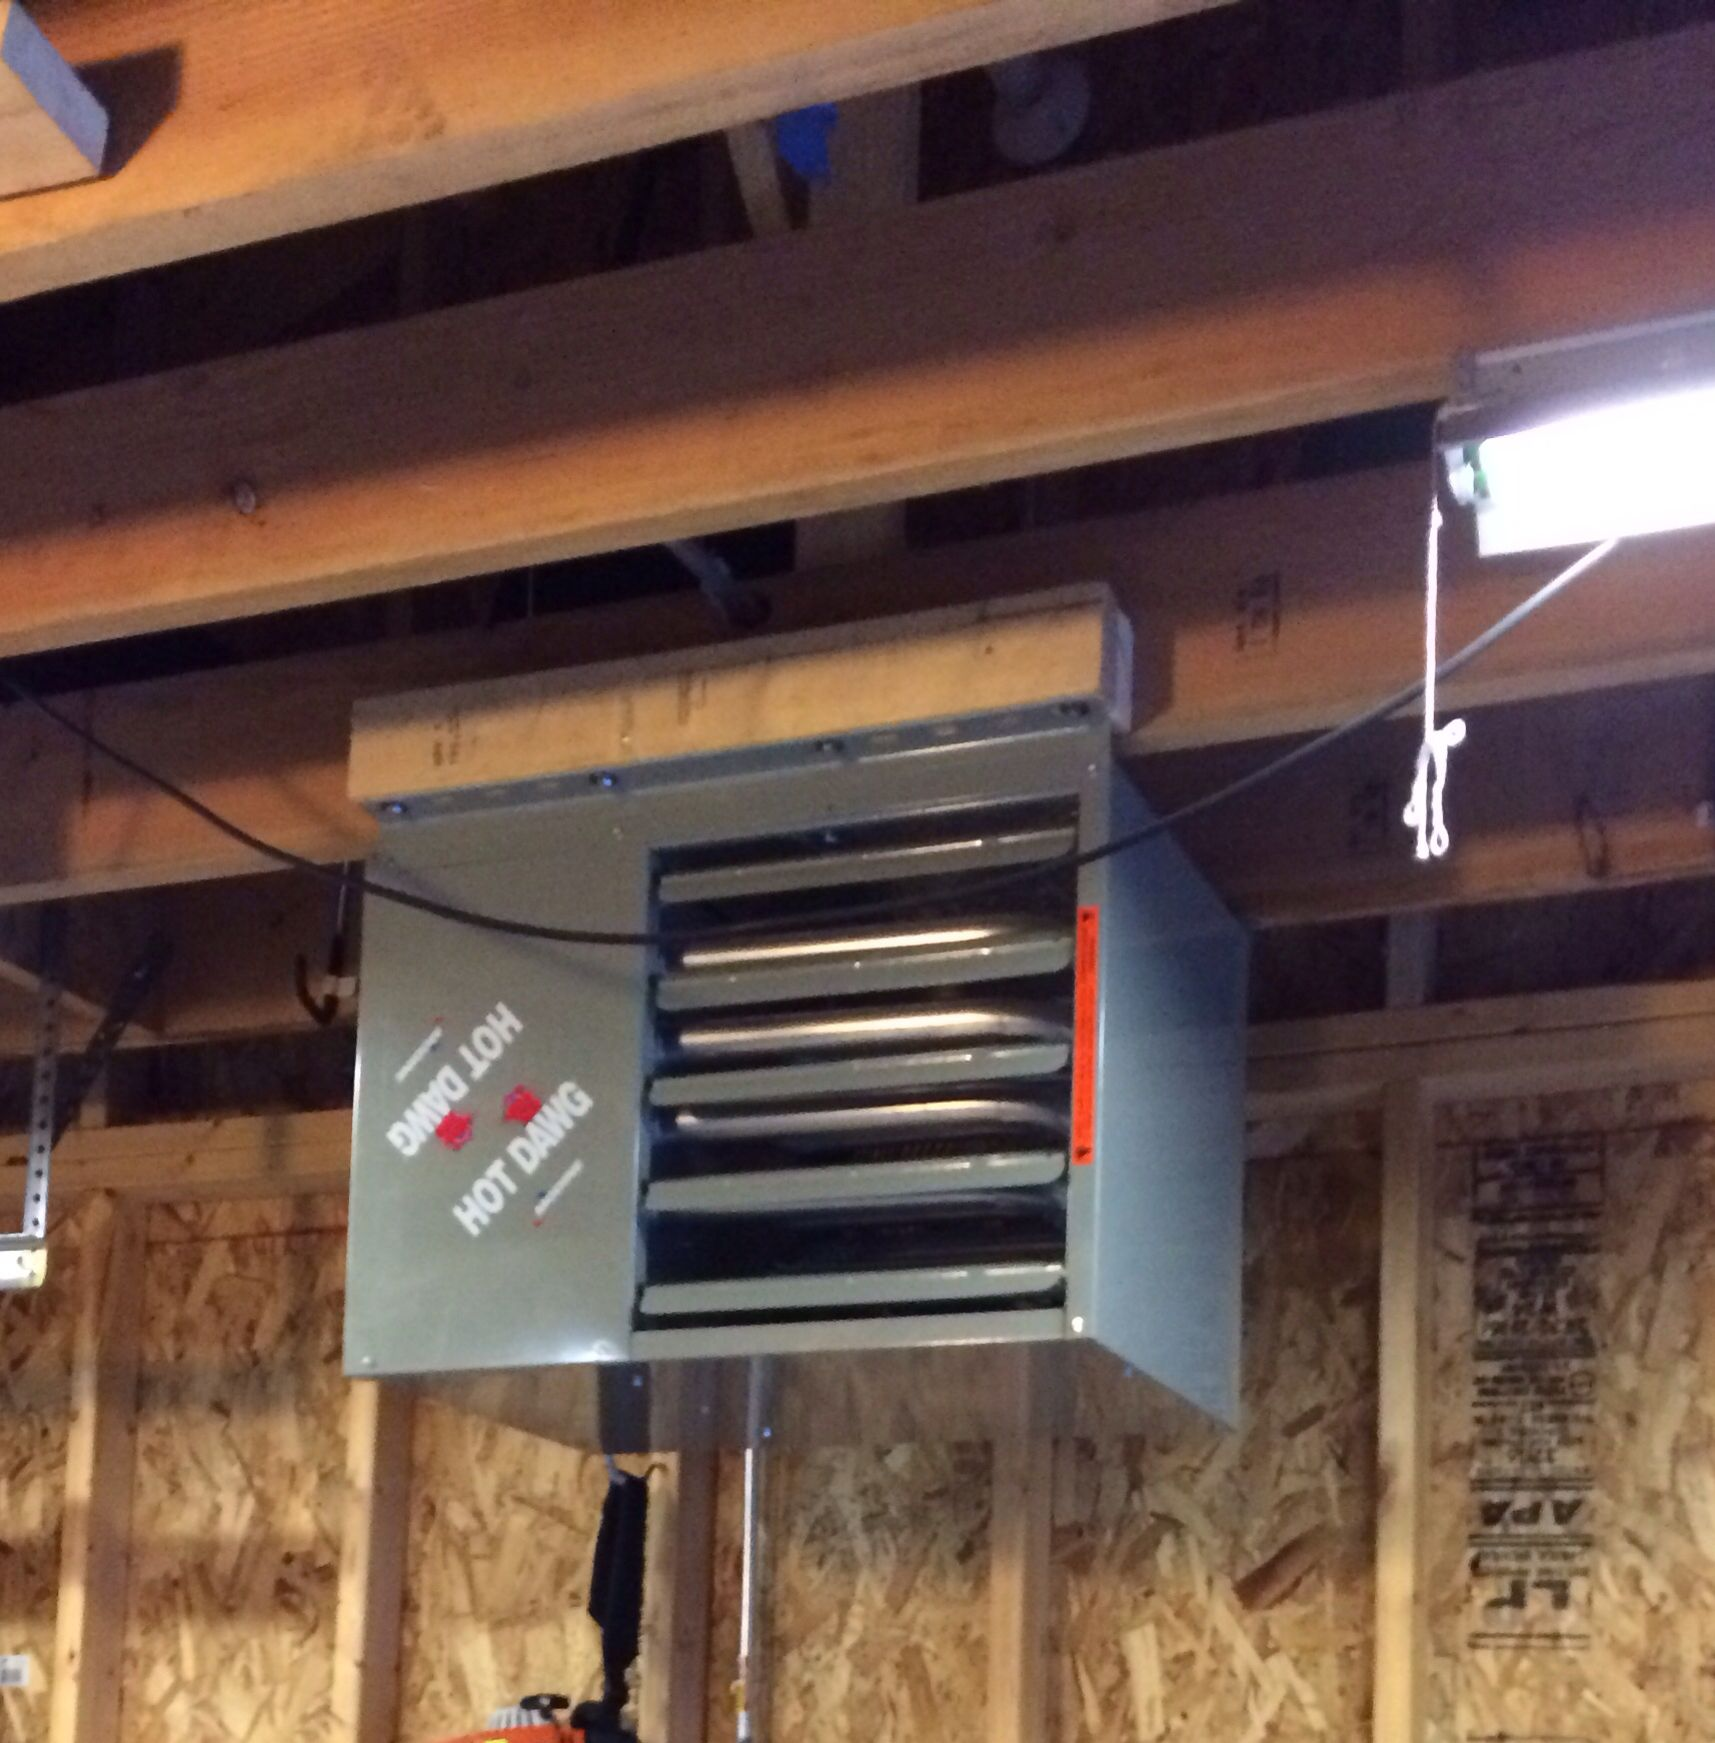 index garage space that electric newair create home heater a safe bringing bonran ah filled products oil heaters plus